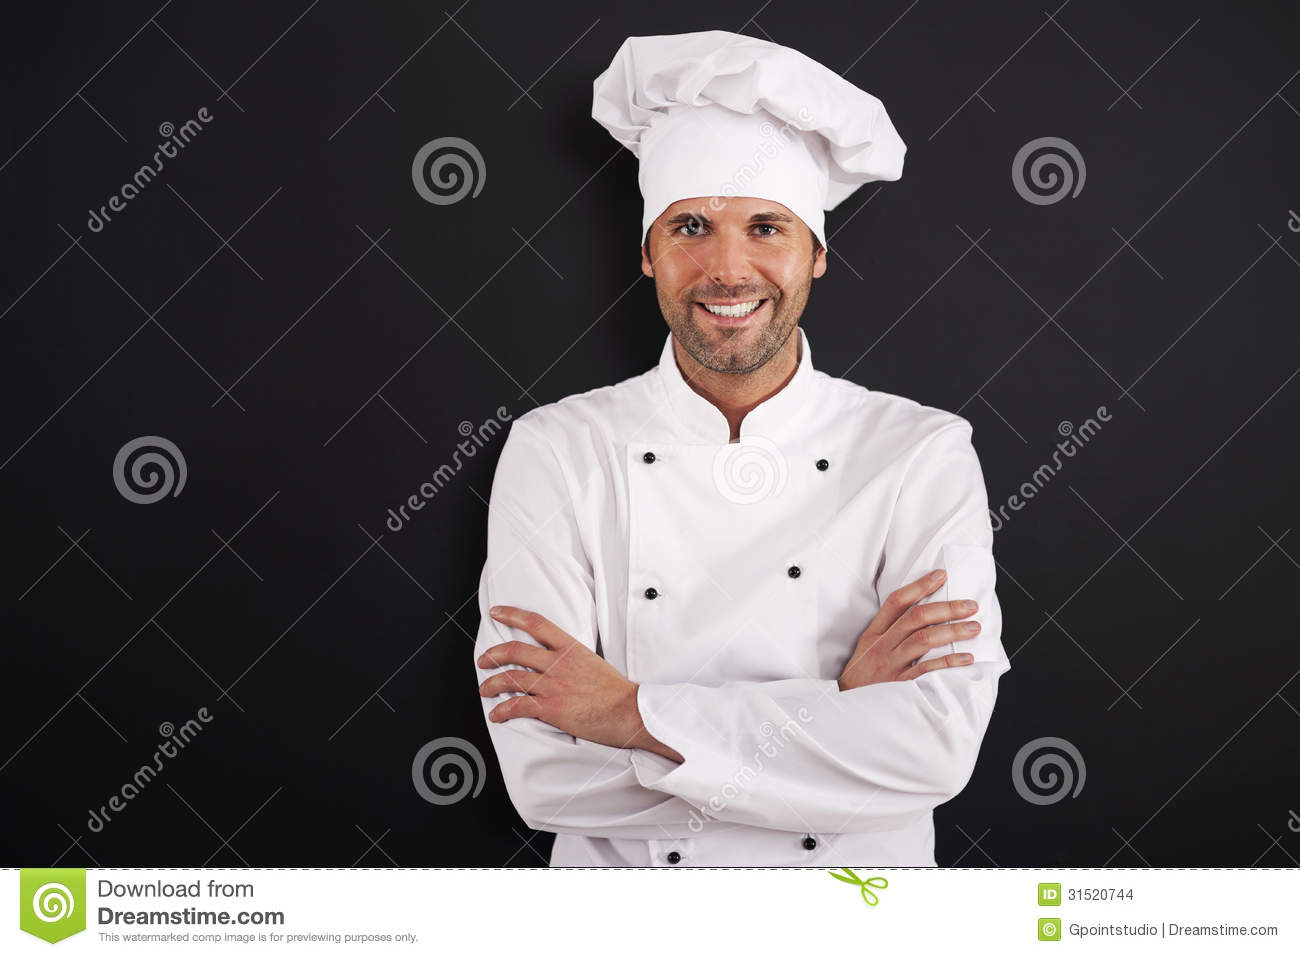 Portrait of smiling chef